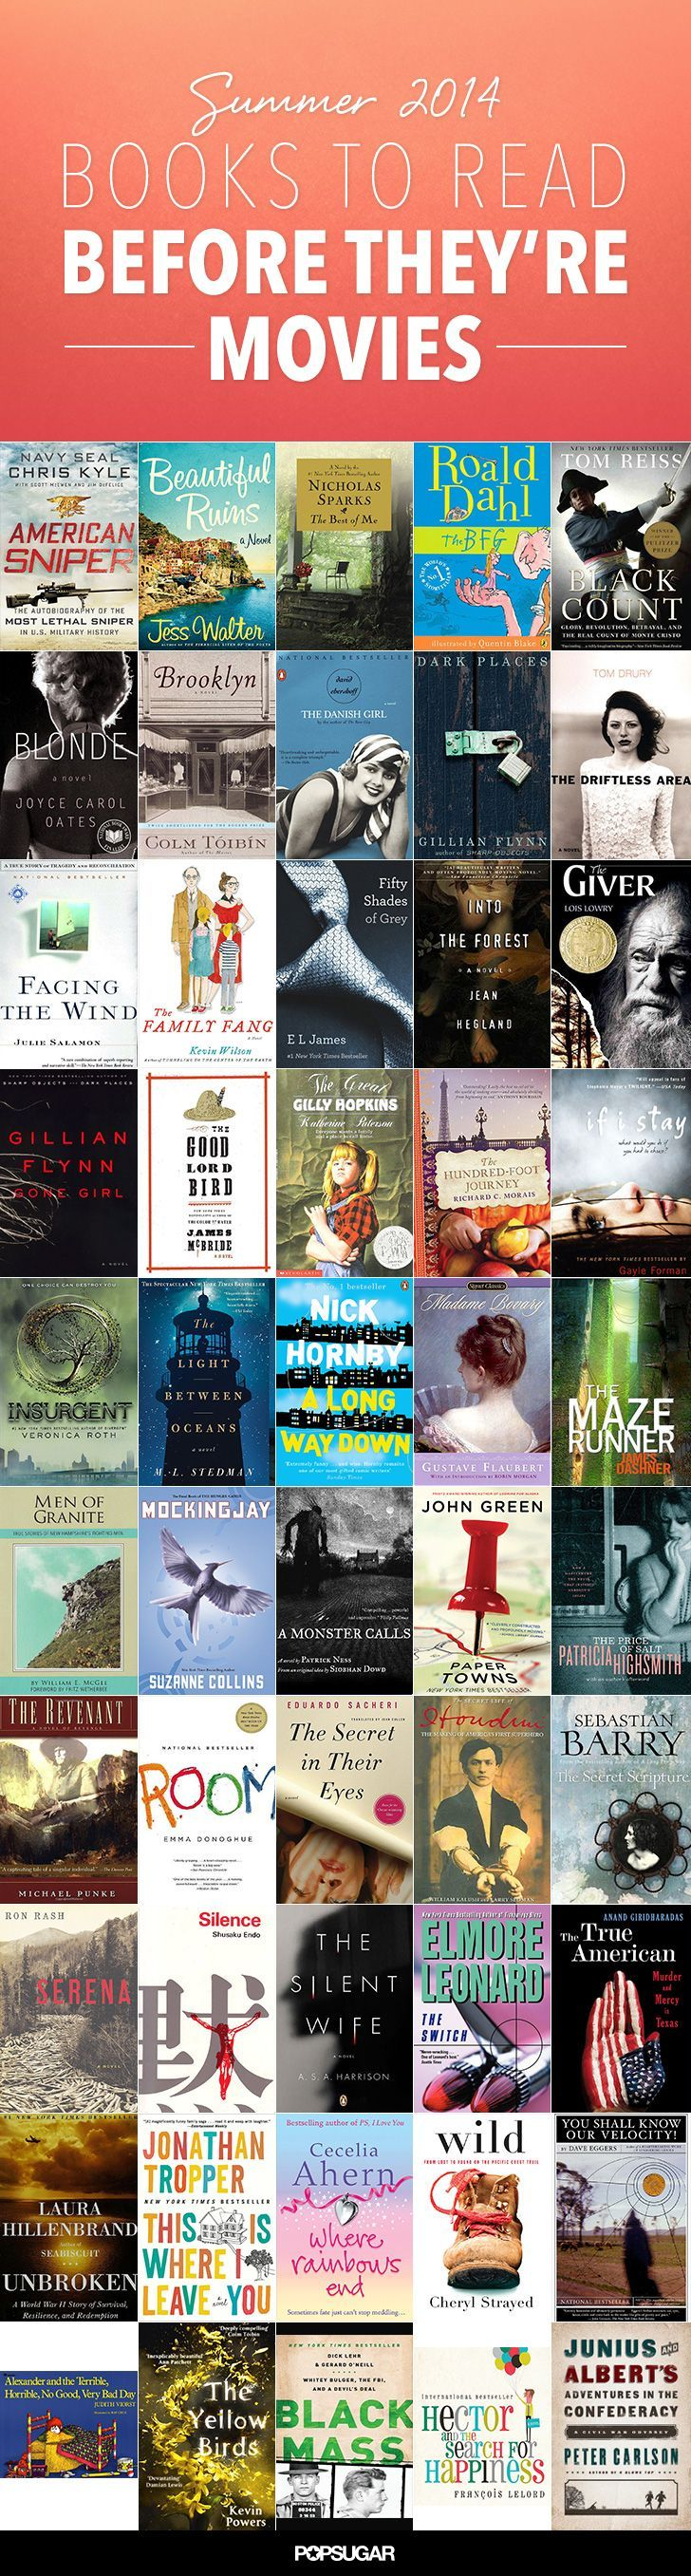 14 best books worth reading images on pinterest books to read summer reading list 50 books to read before theyre movies fandeluxe Image collections